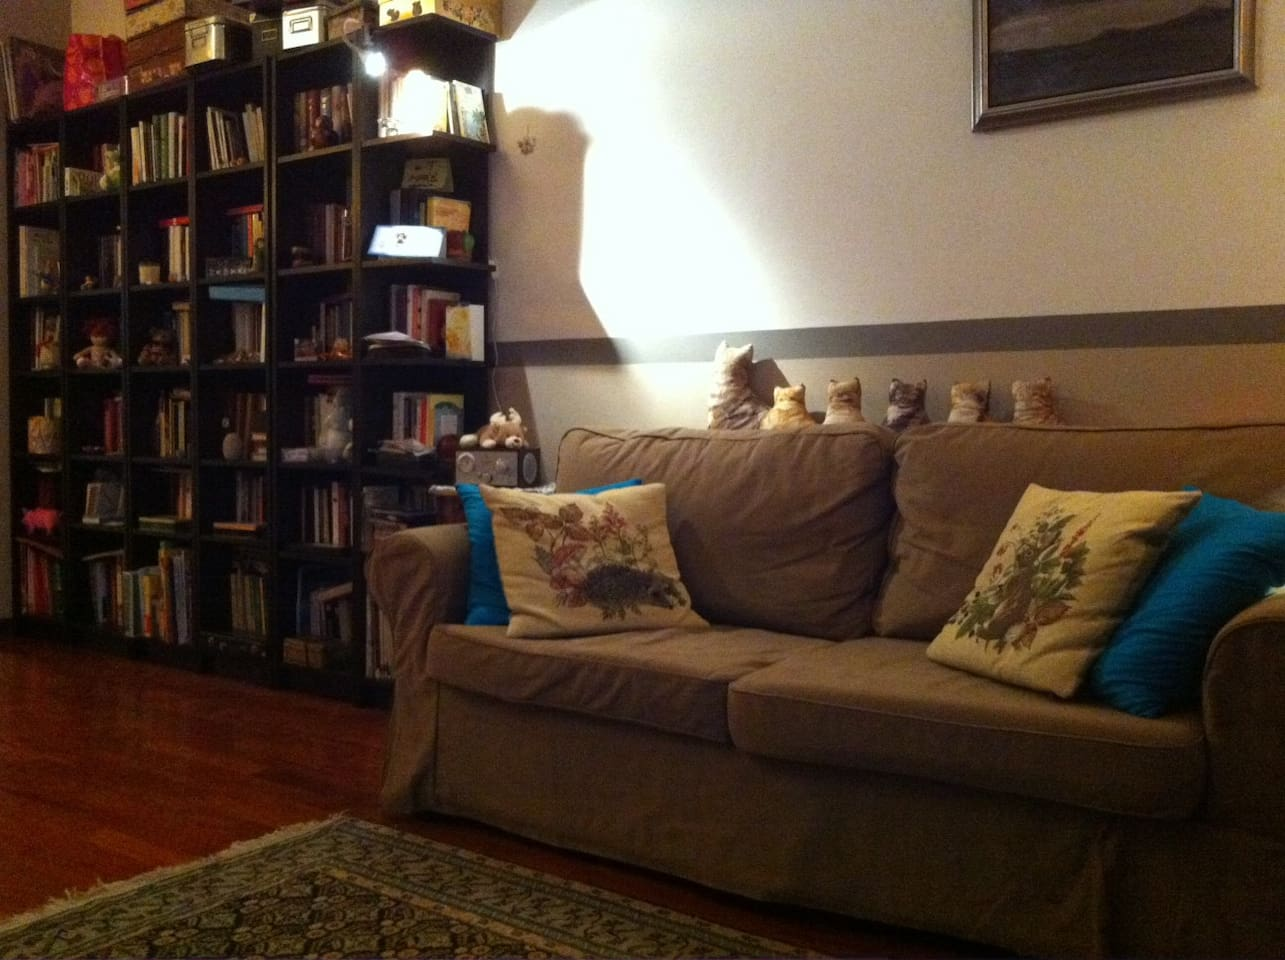 Friendly flat in the heart of Turin - Apartments for Rent in Turin